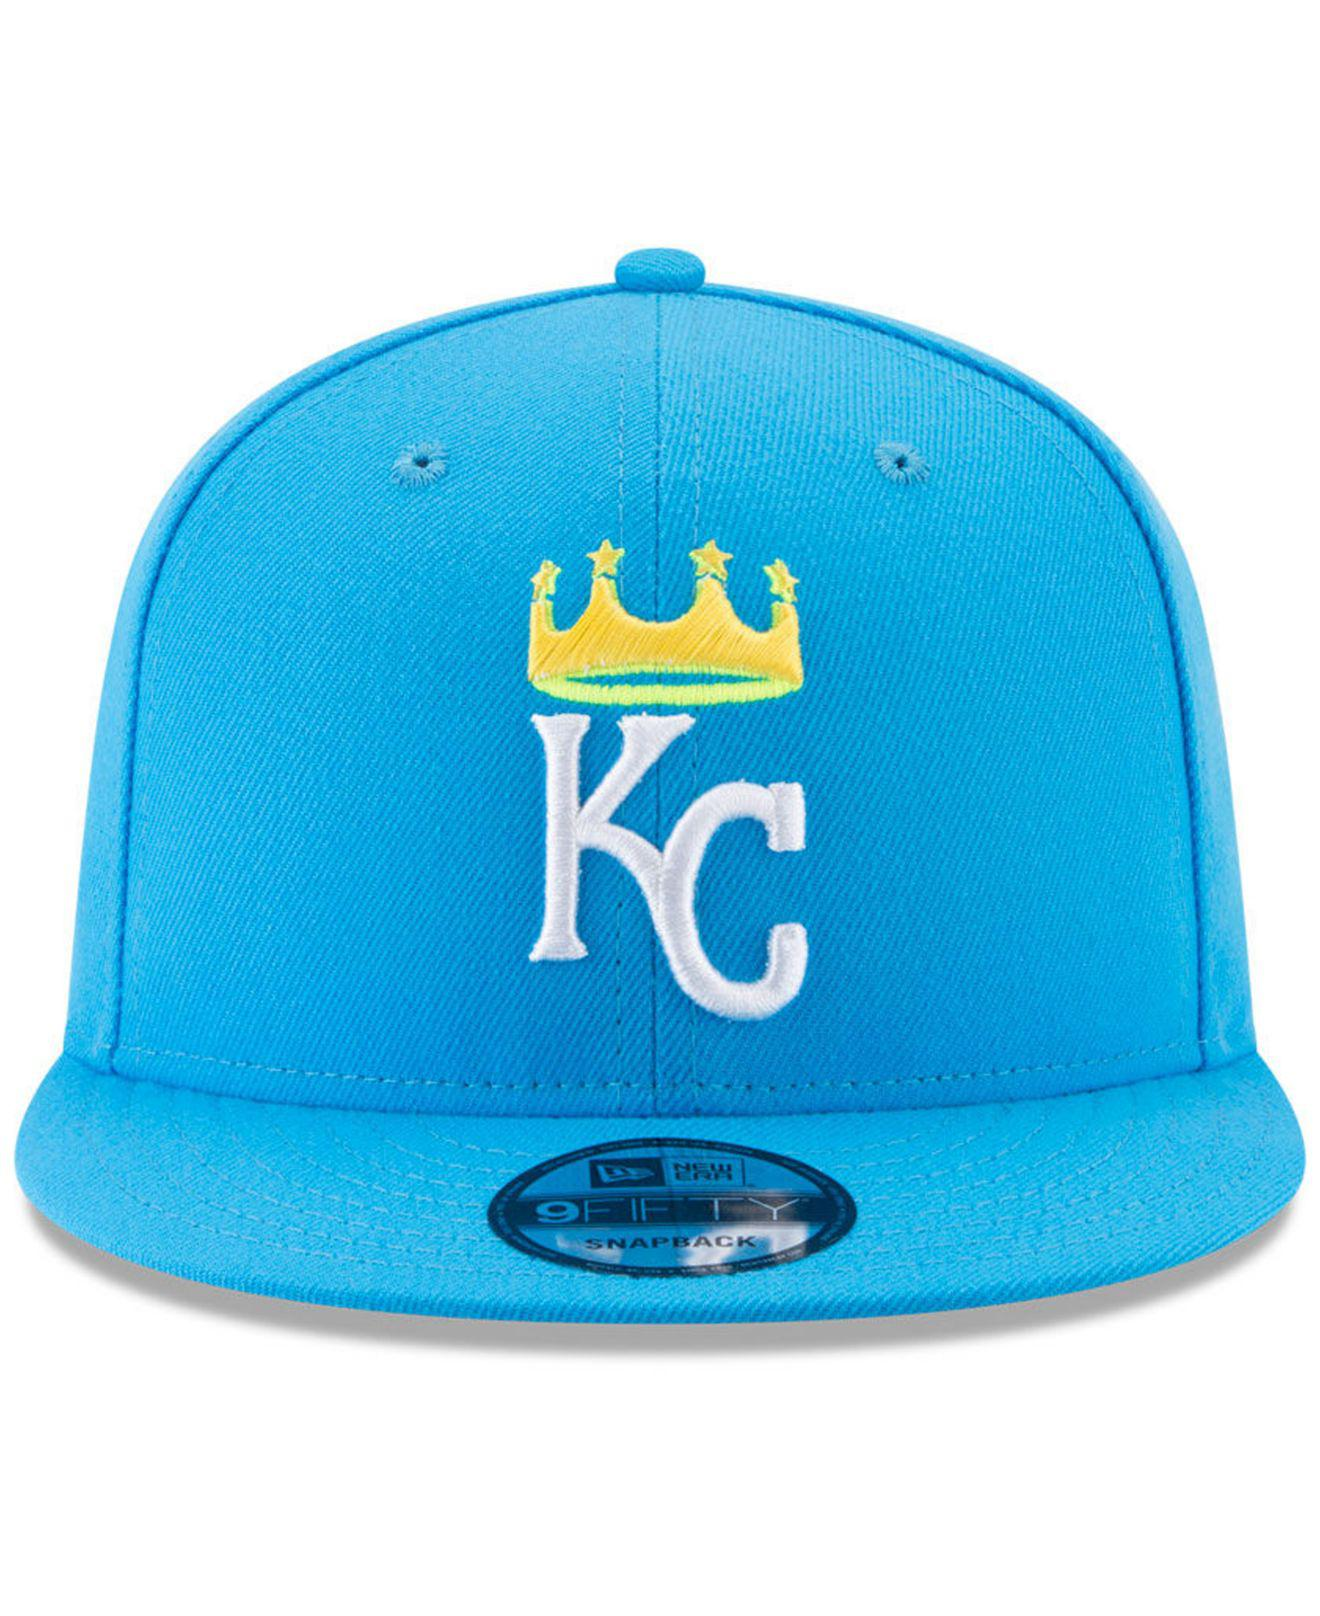 more photos a03af e4027 ... spain lyst ktz kansas city royals players weekend 9fifty snapback cap  in blue for men save